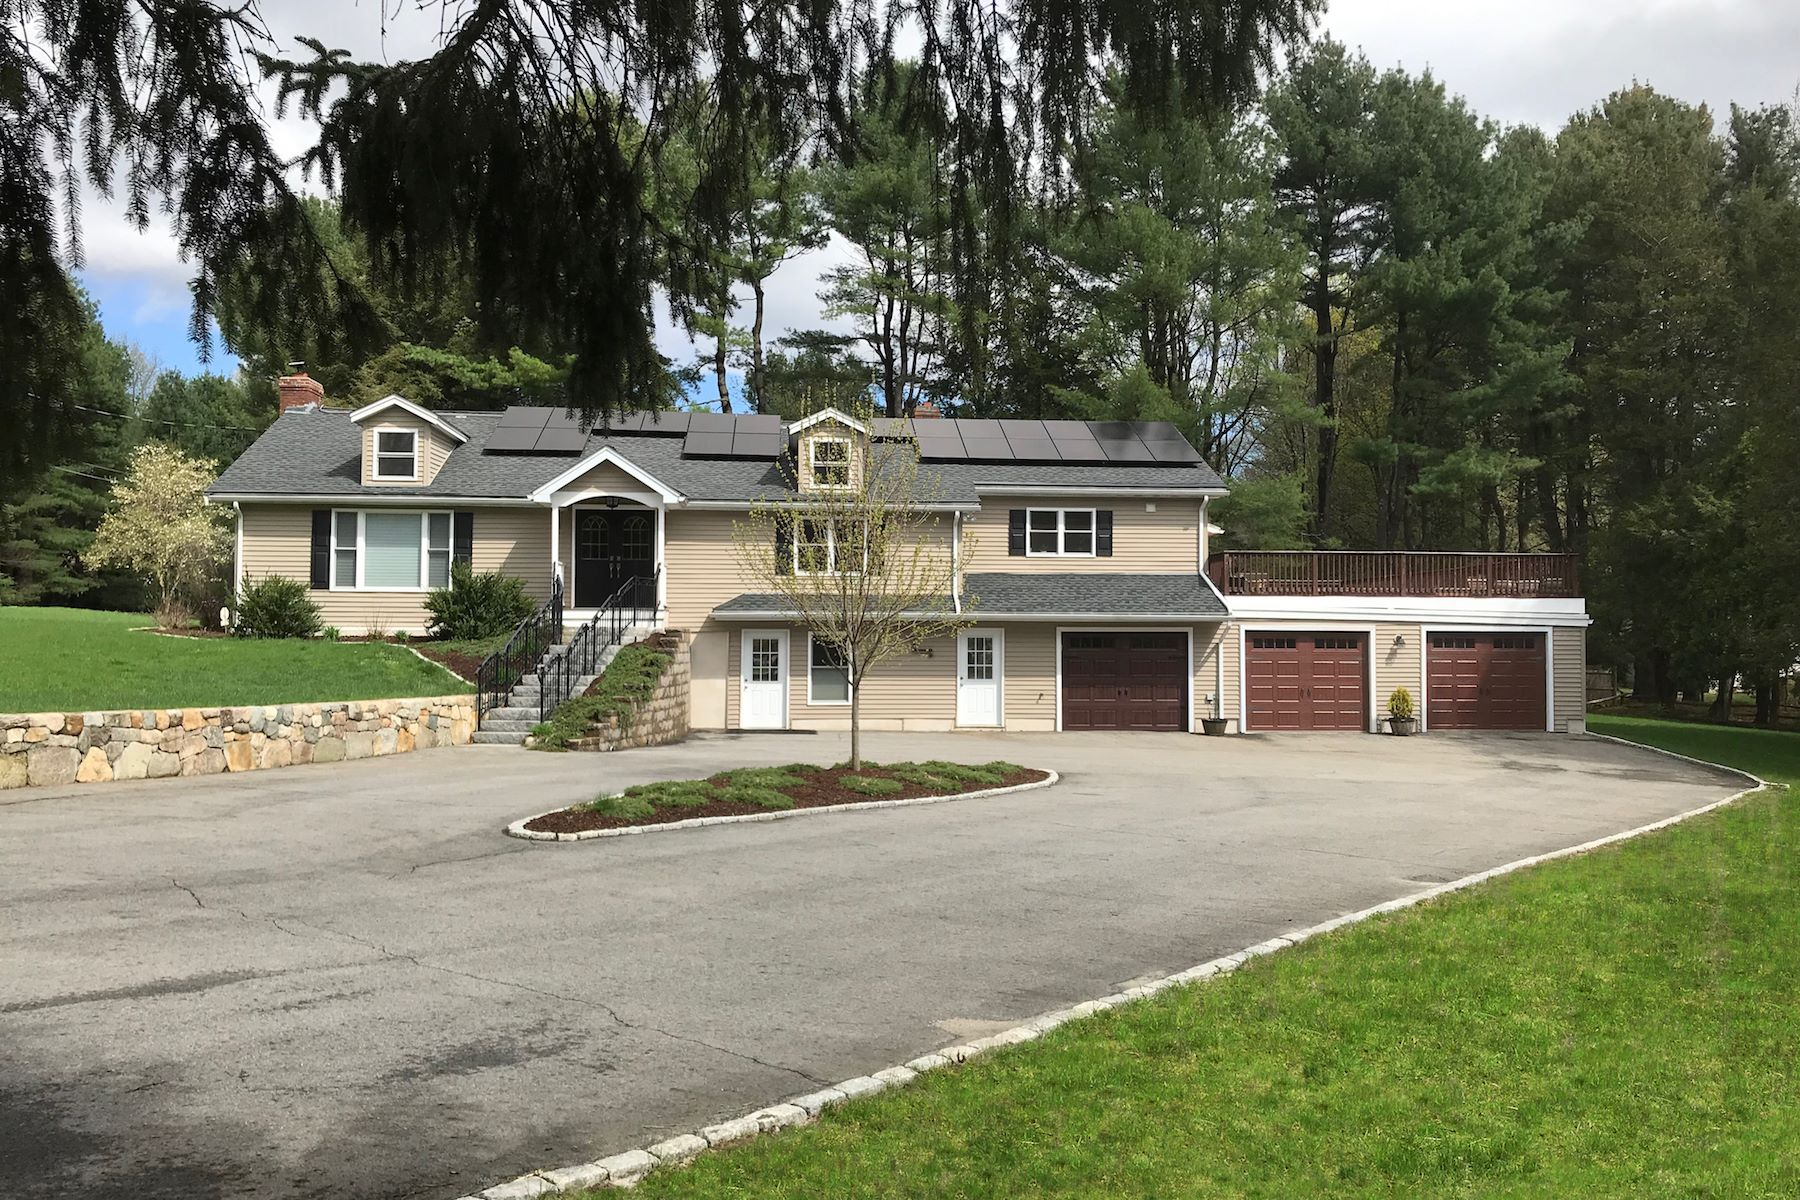 Single Family Home for Active at Distinctive Newer Home Upgraded With Special Features 24 Meadowbrook Road Dover, Massachusetts 02030 United States